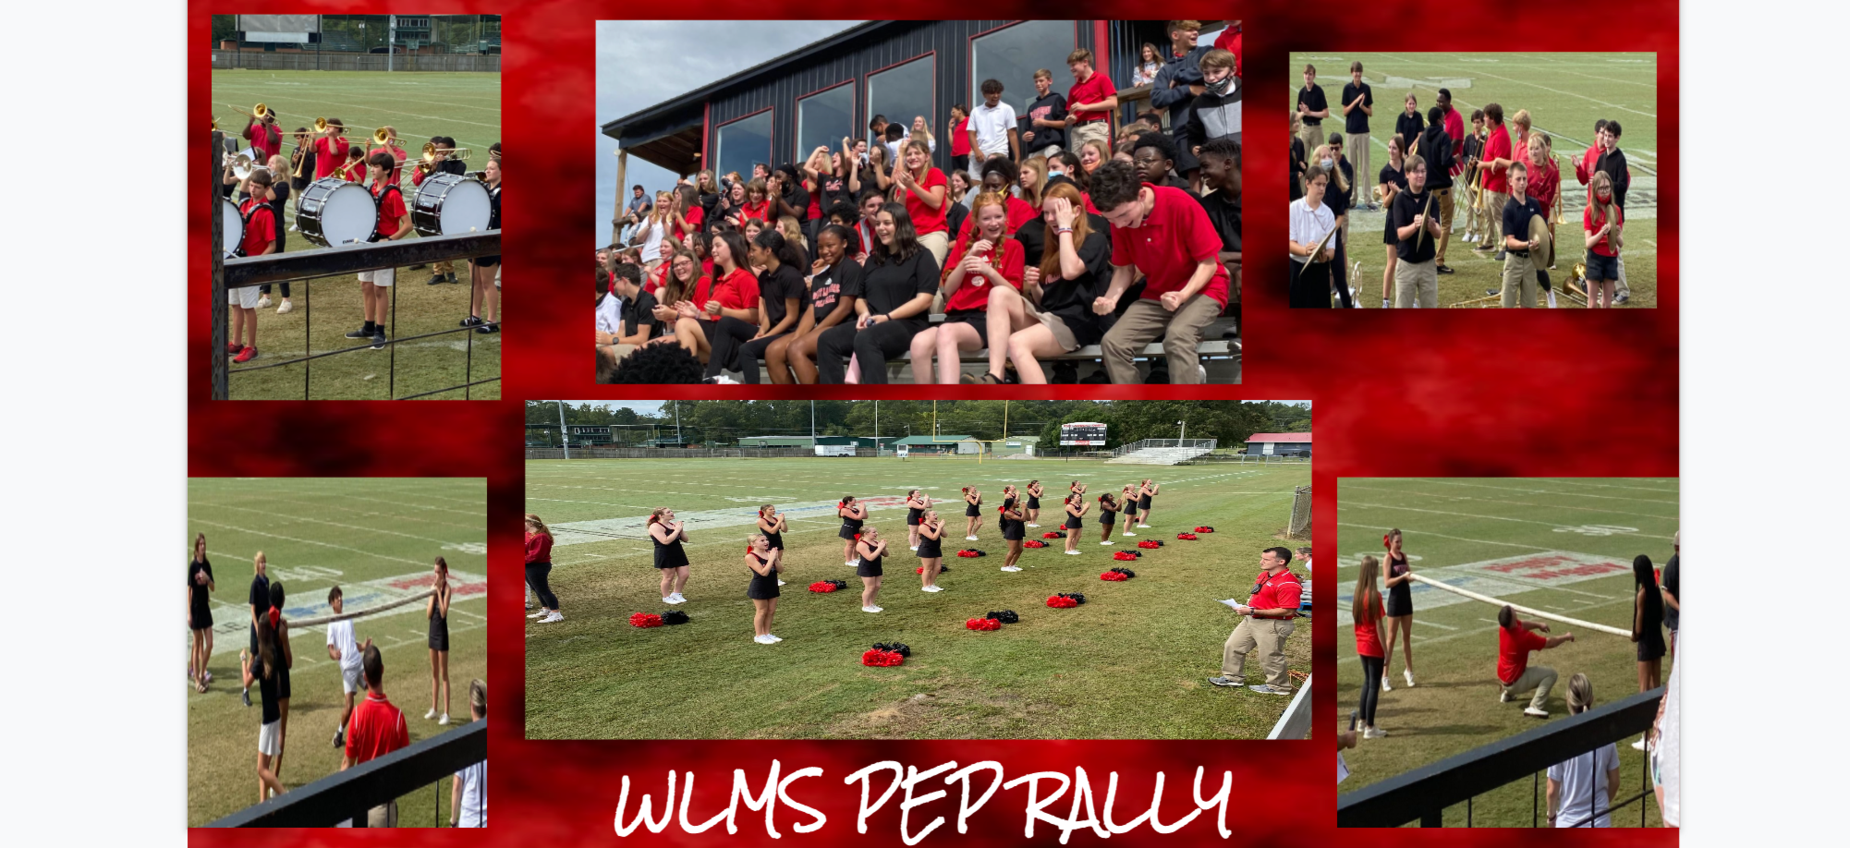 WLMS Pep Rally pictures